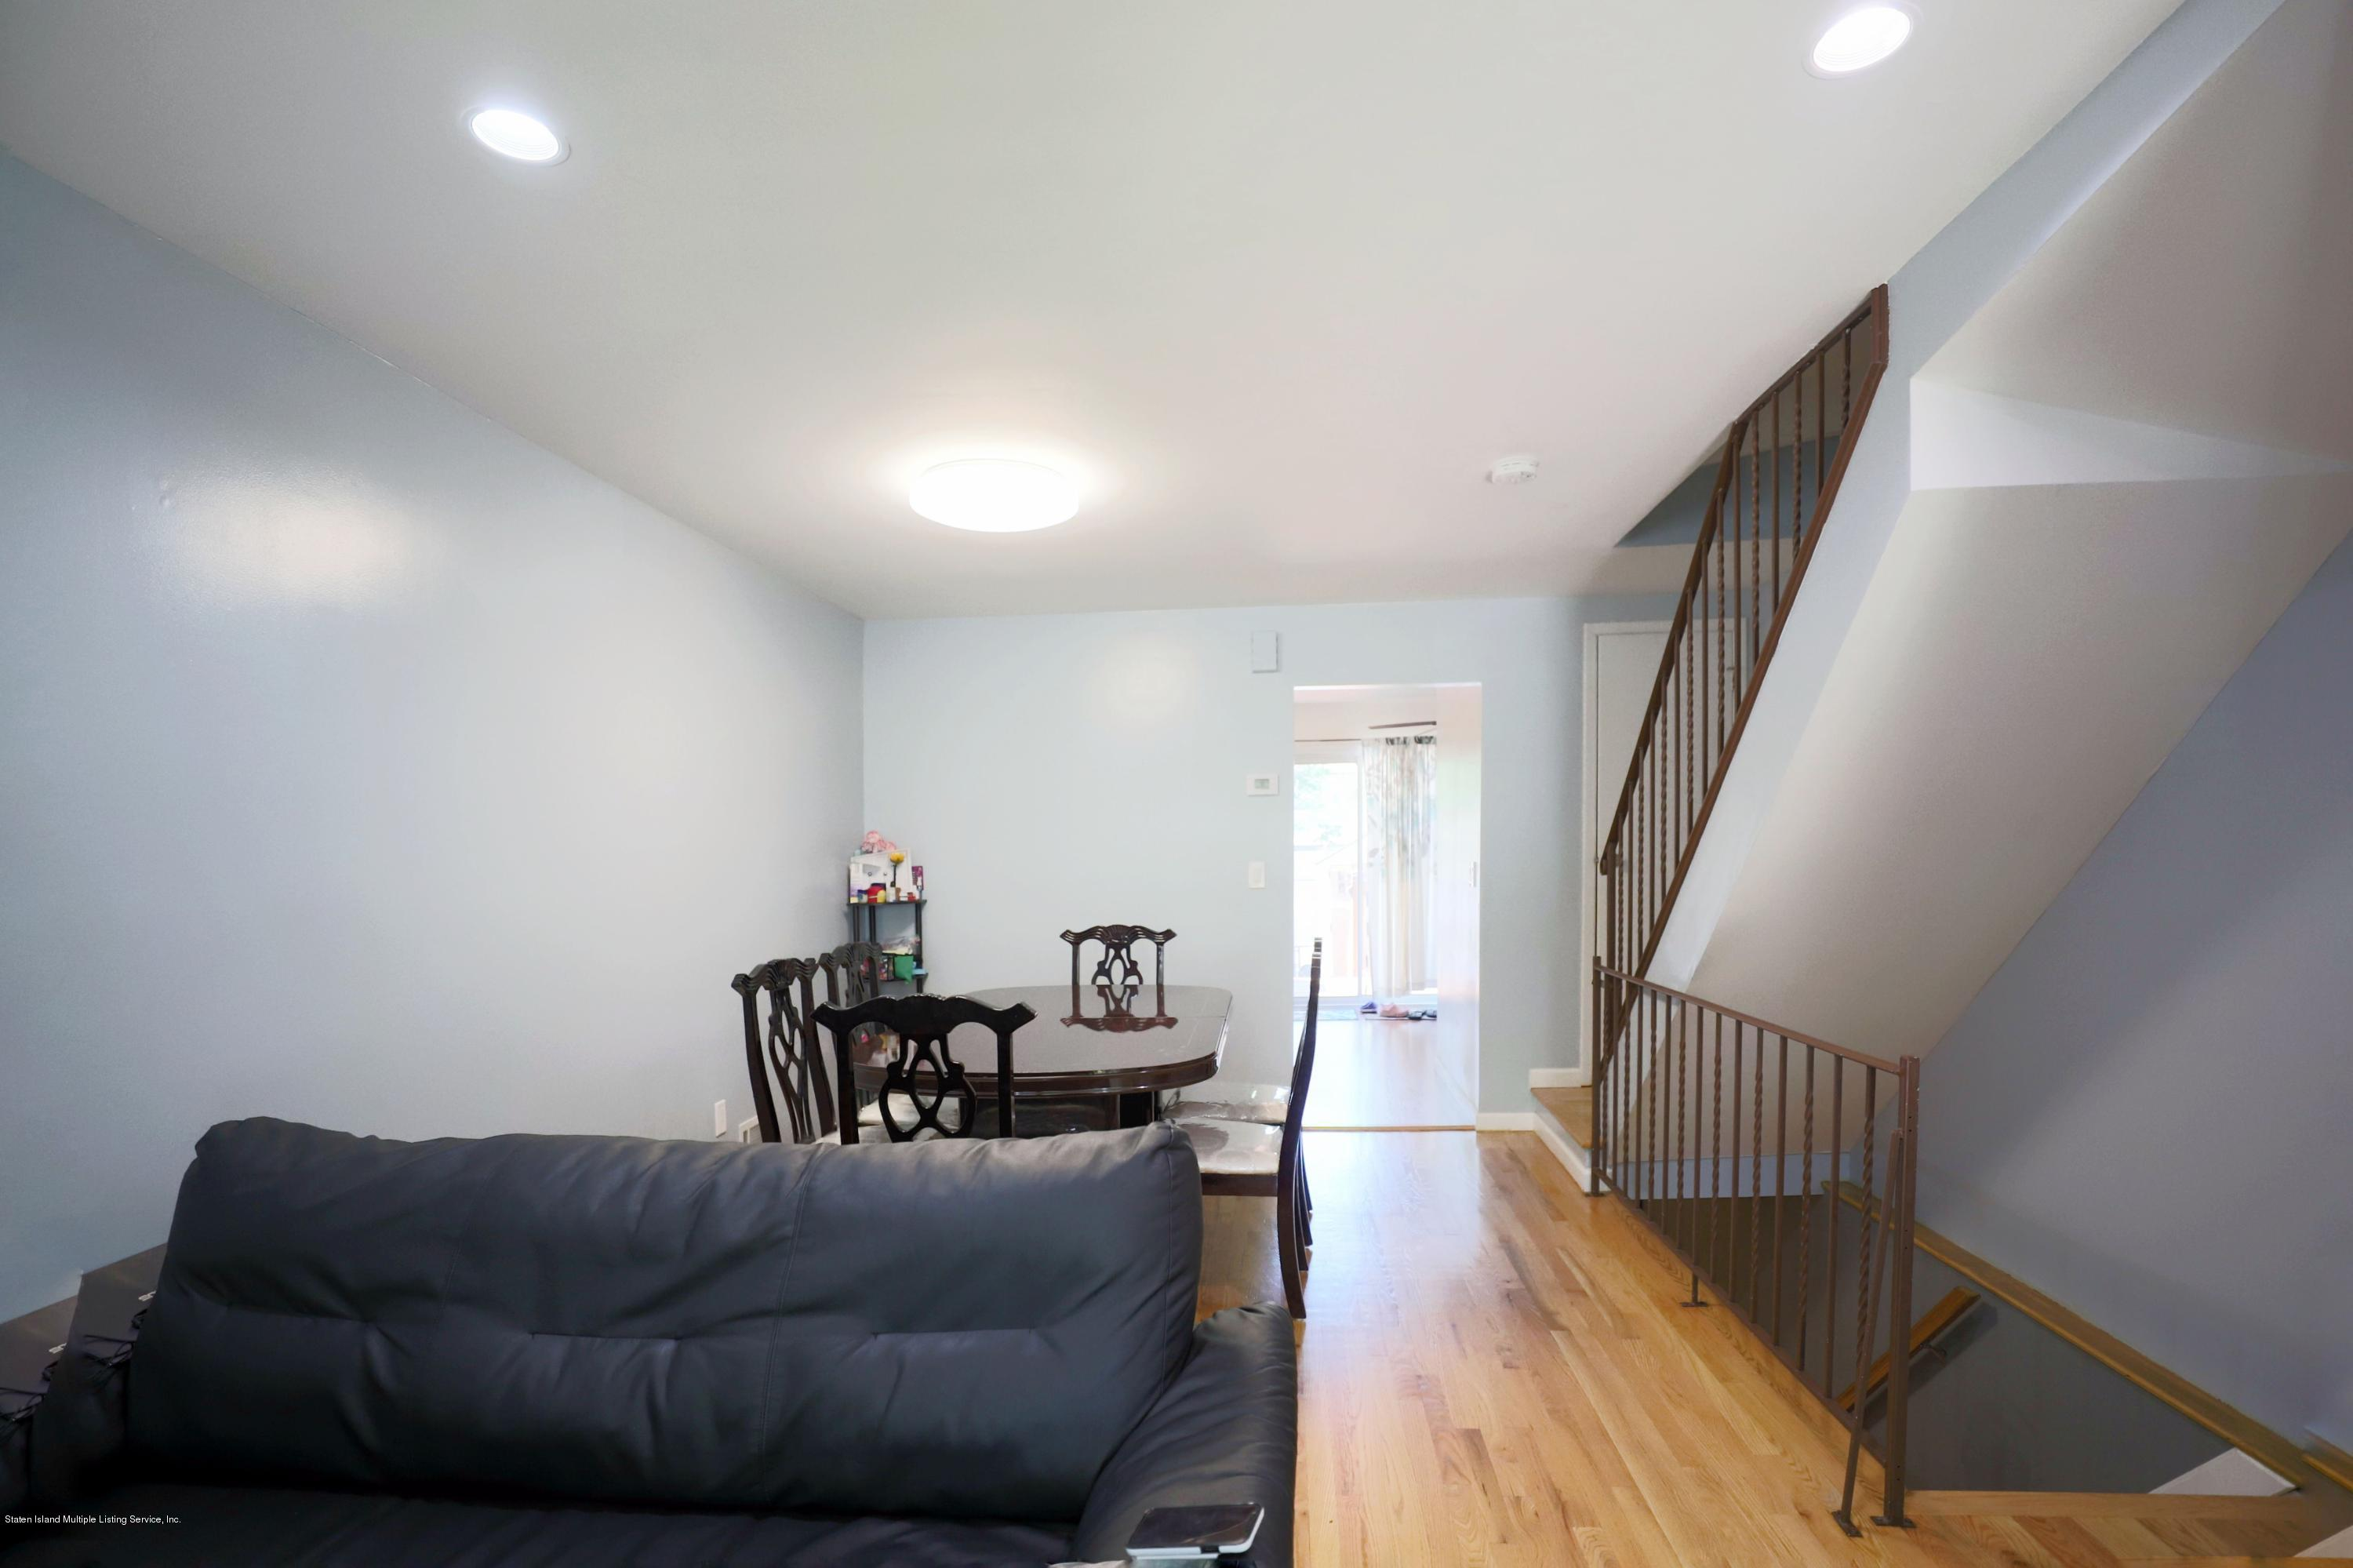 Single Family - Attached 16 Country Lane  Staten Island, NY 10312, MLS-1129780-5